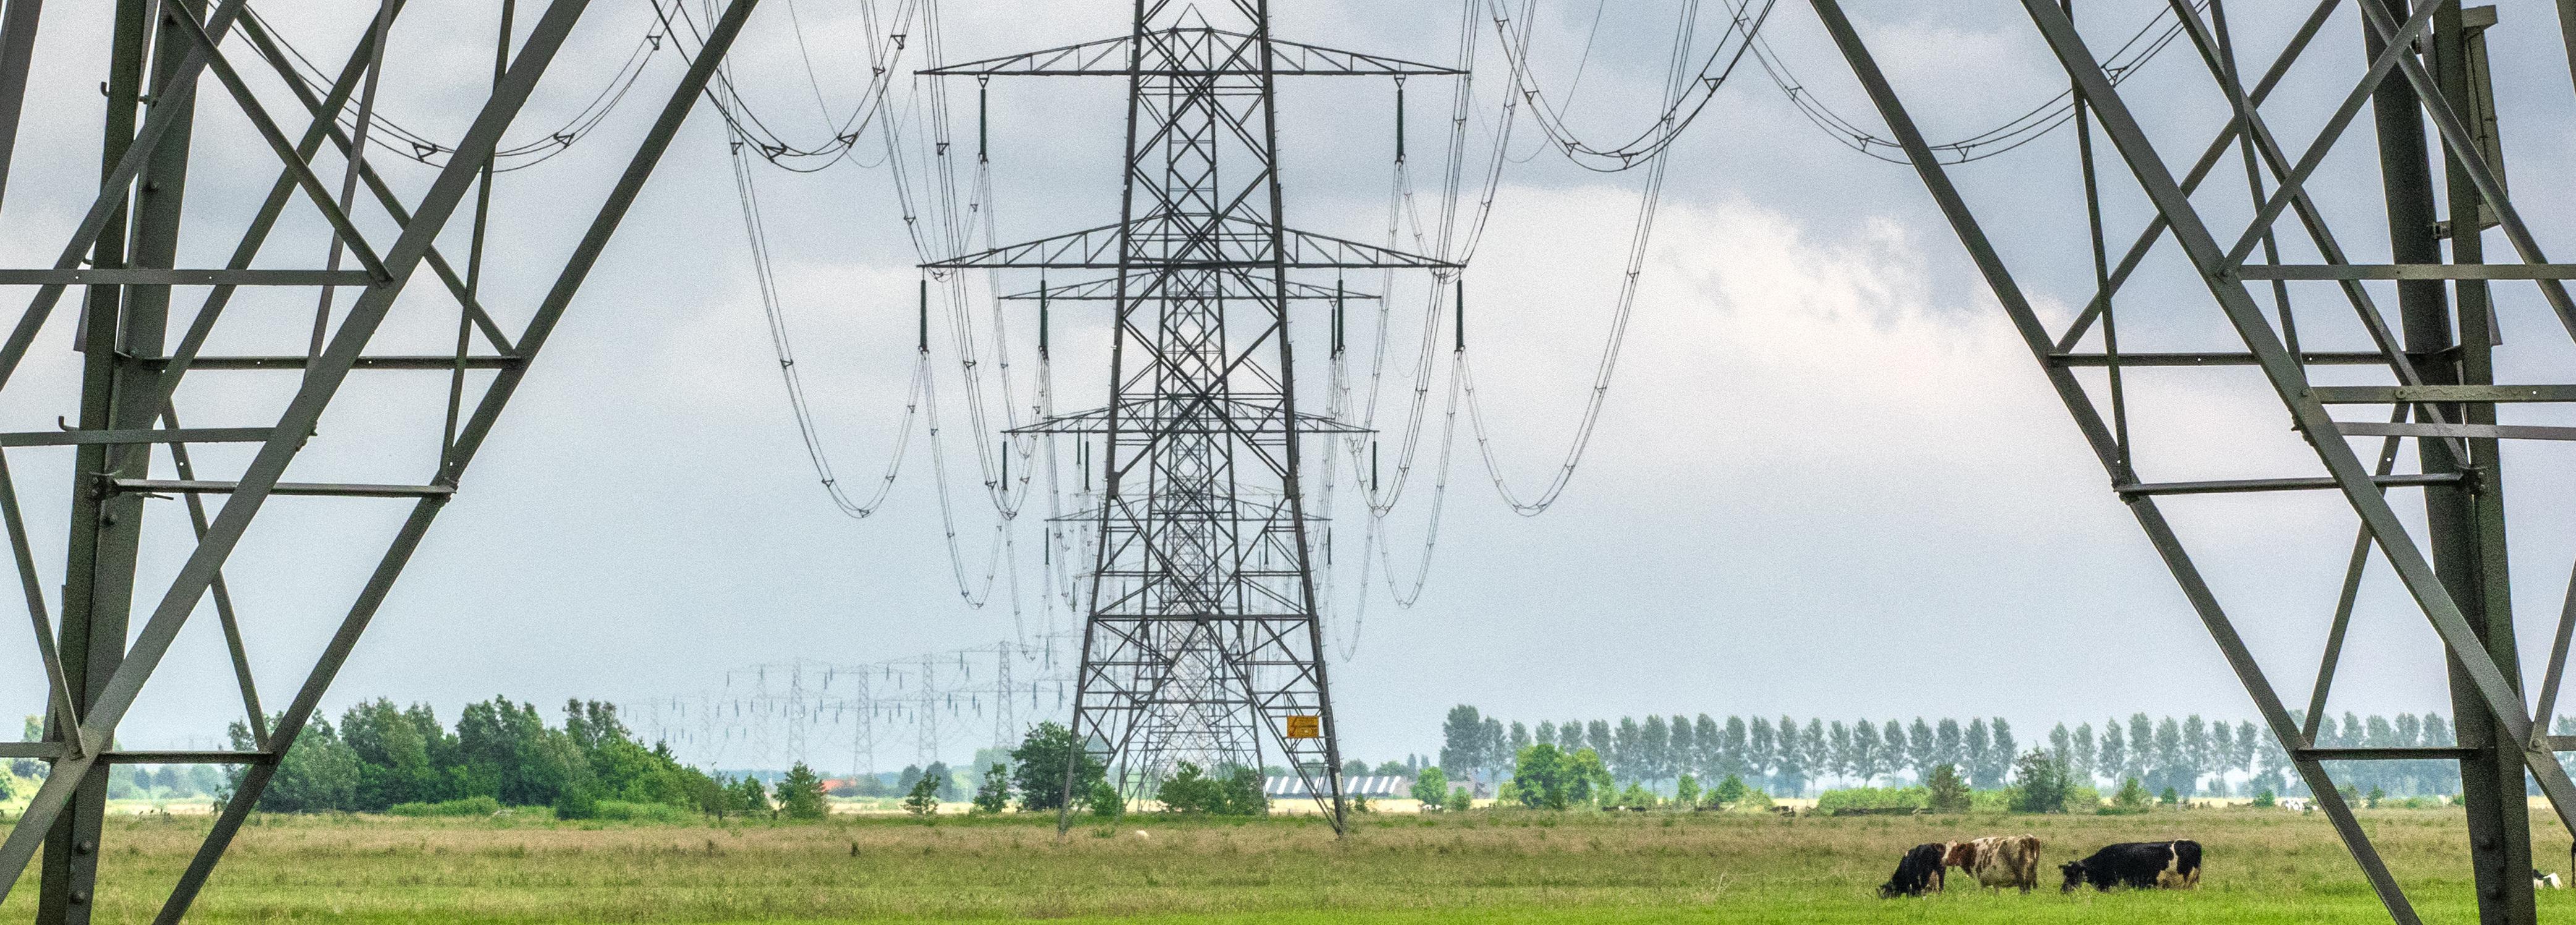 Electric power lines above fields